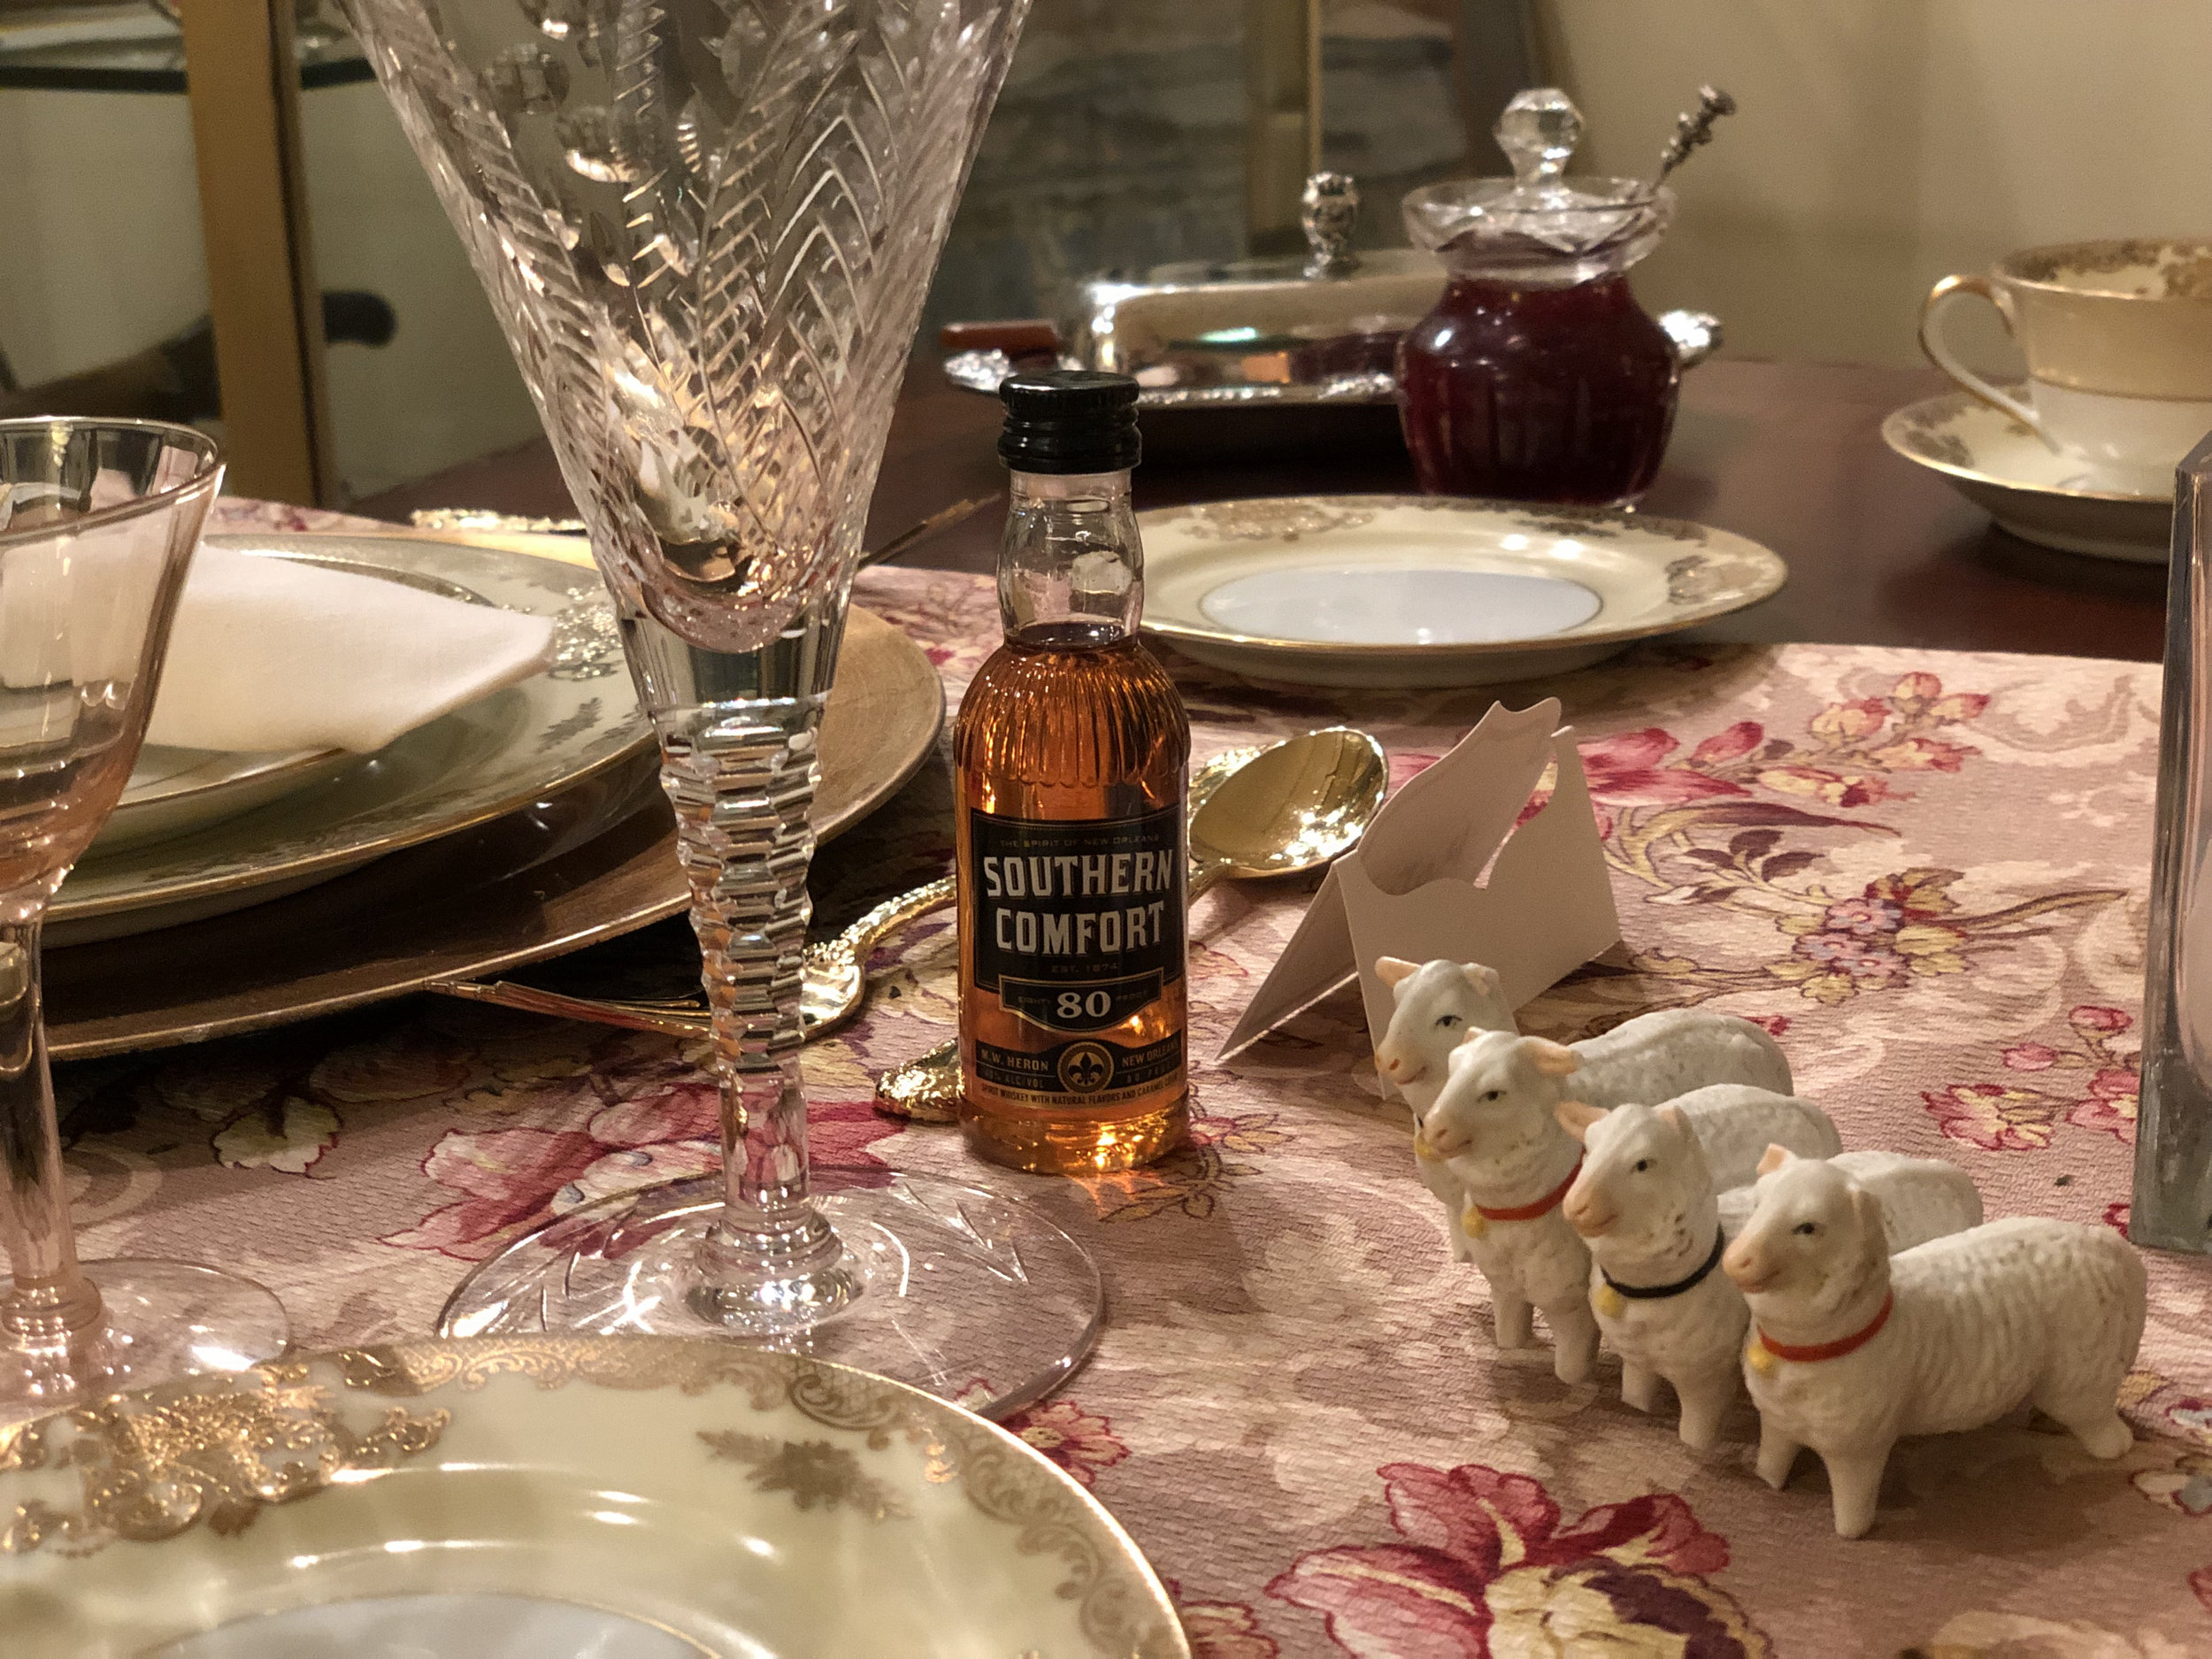 teri_whiskeyinateacup_W3BookClub_spiritedtable_photo14.jpg